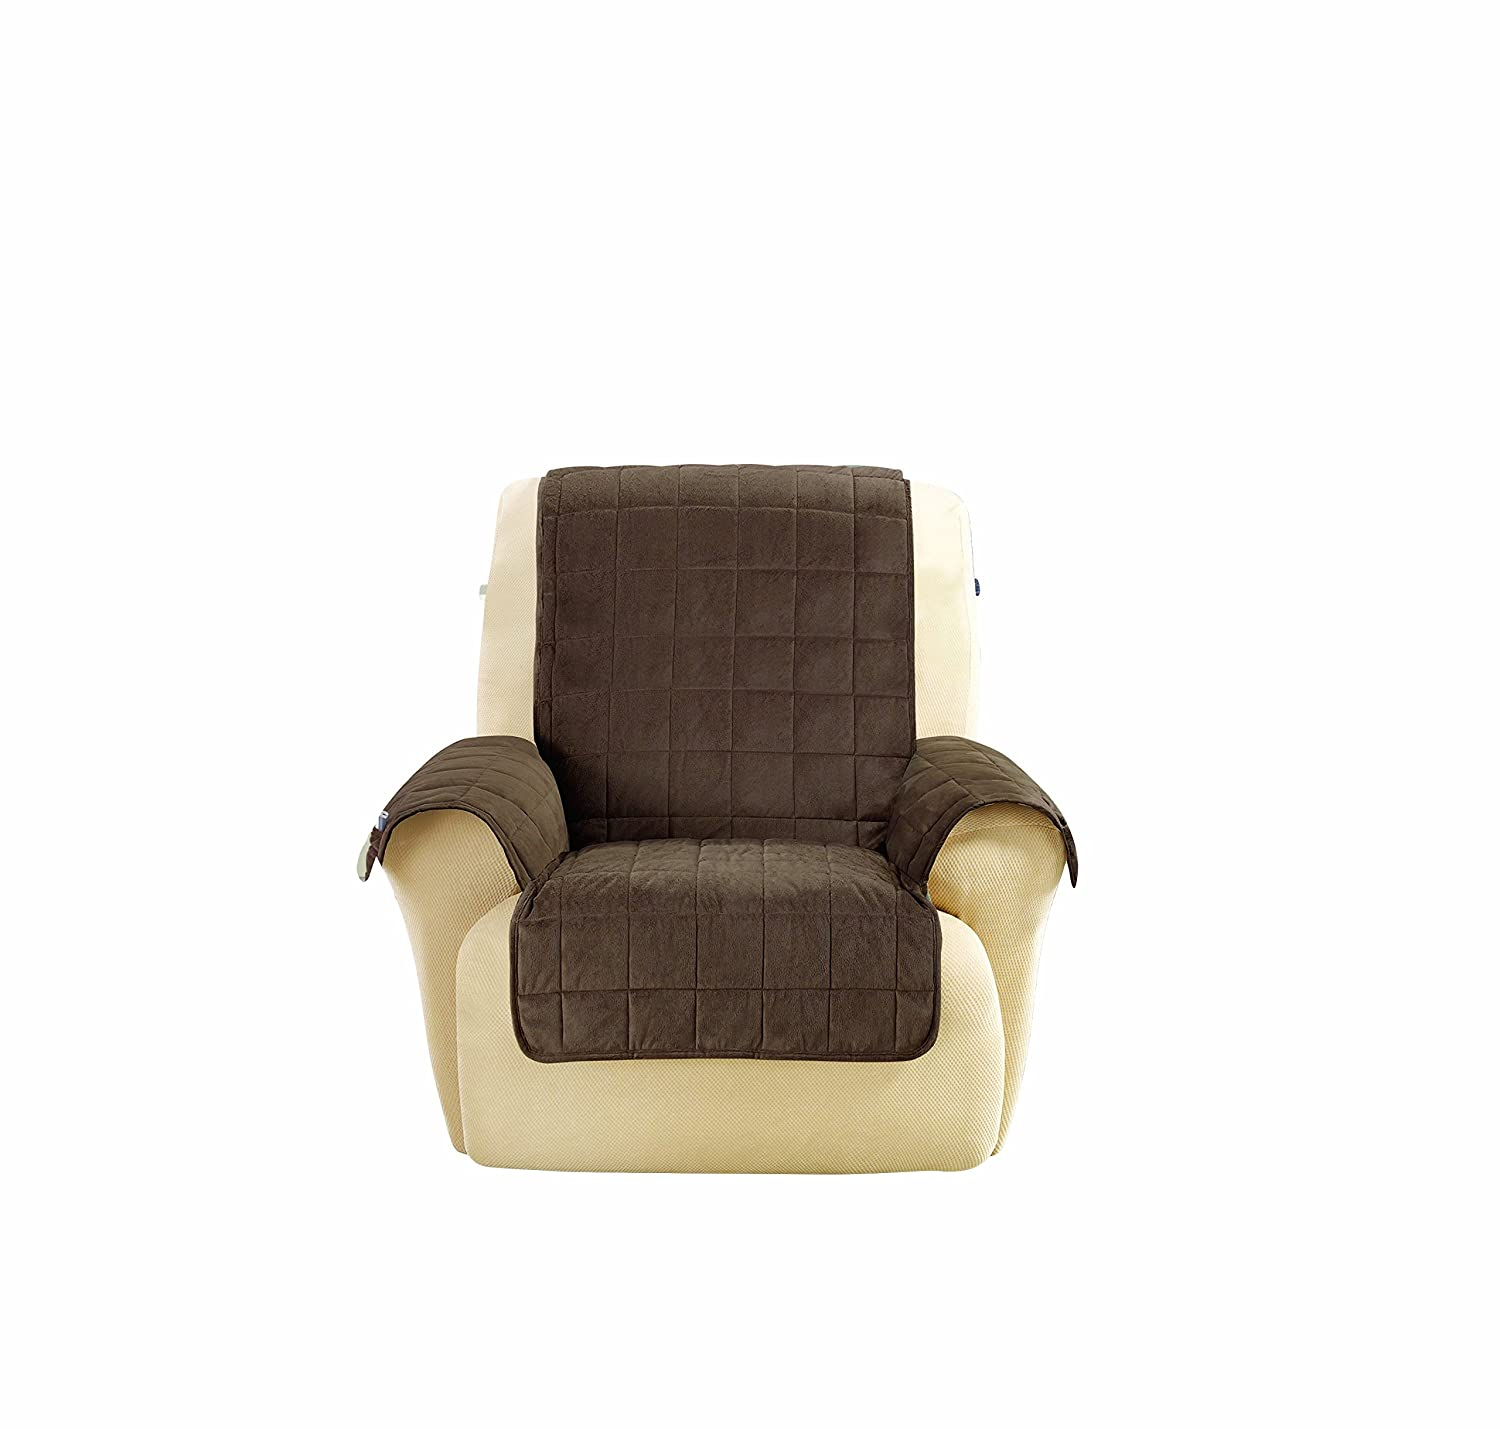 SureFit Deep Pile Velvet - Recliner Slipcover - Chocolate (SF43706) Sure Fit Inc.